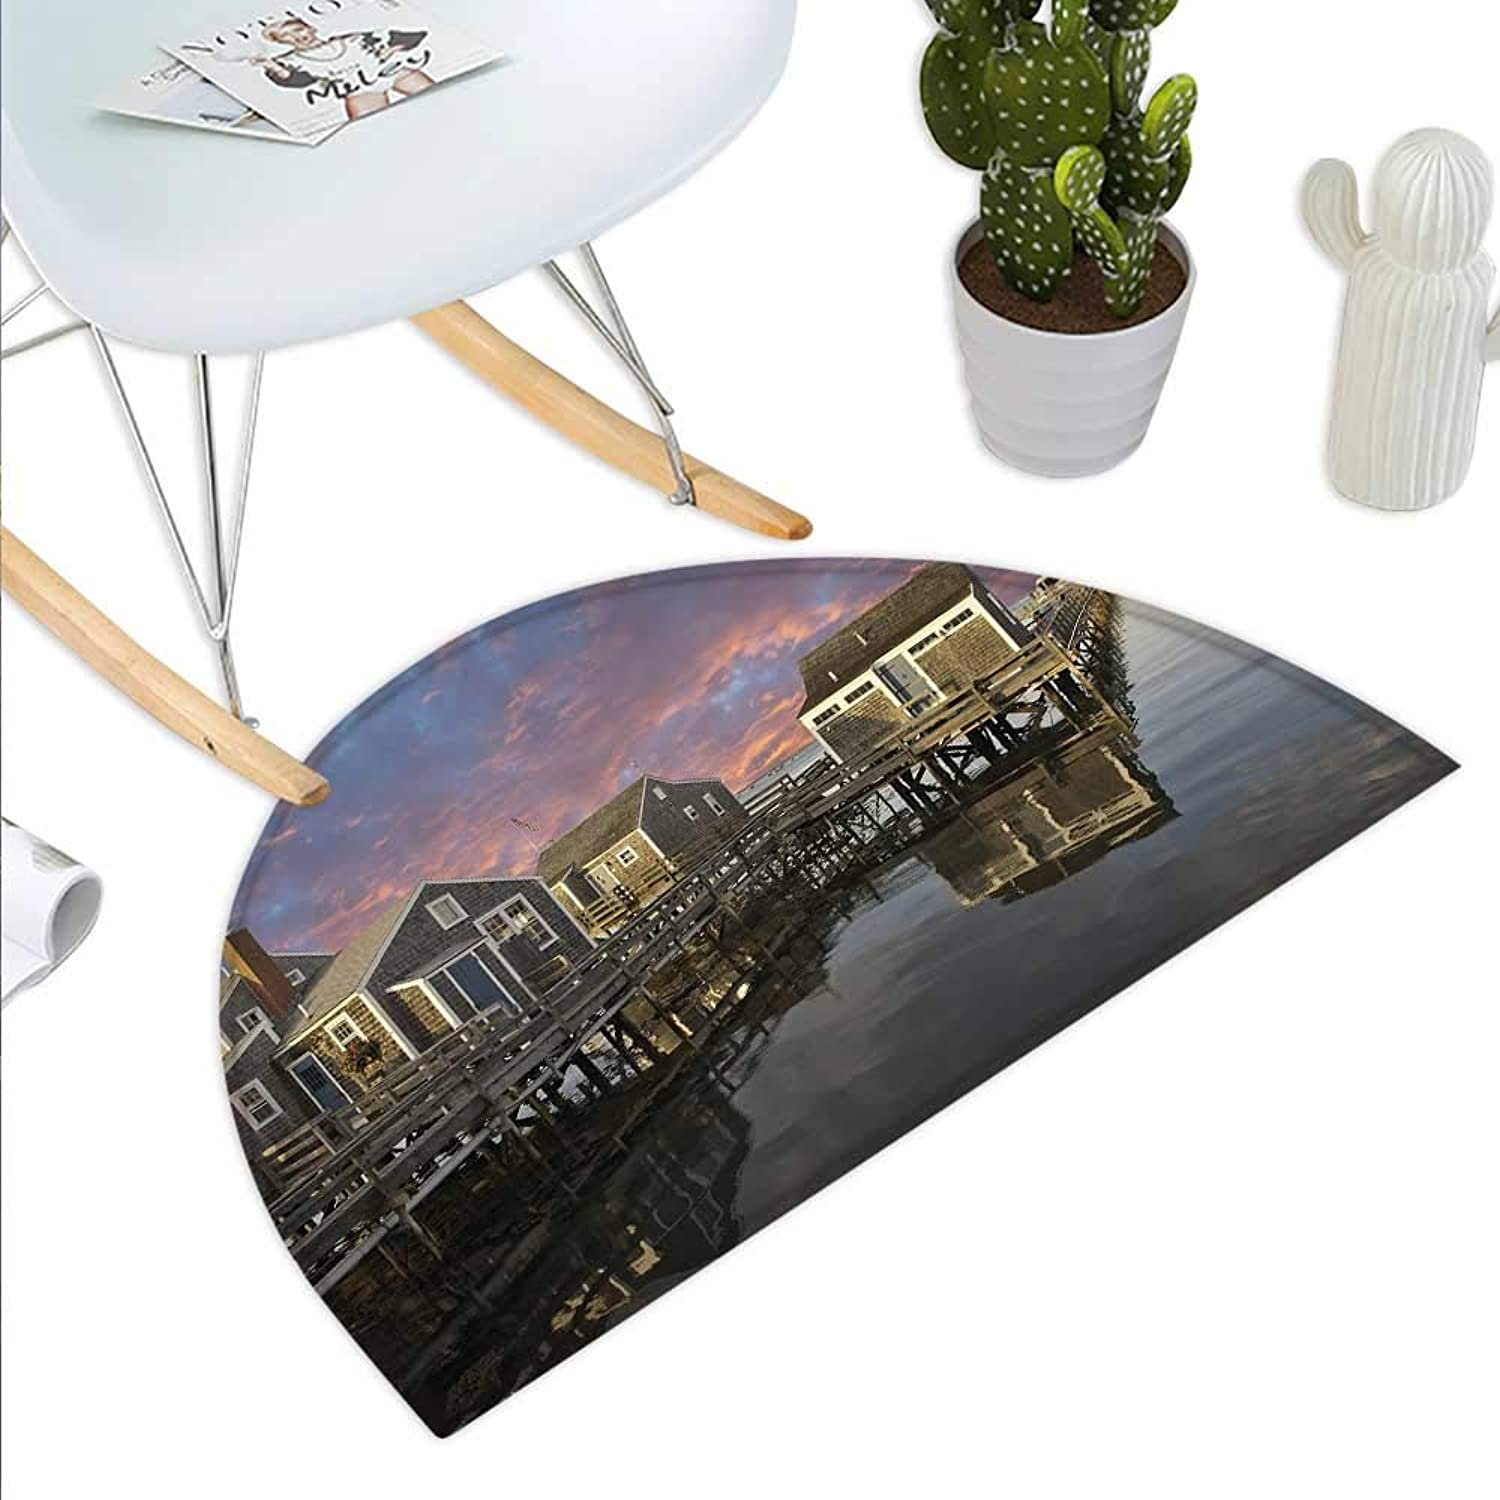 United States Semicircle Doormat Sunset Over Nantucket Massachusetts Dramatic Sky Clouds Pond Houses Halfmoon doormats H 35.4  xD 53.1  Coral bluee Sepia